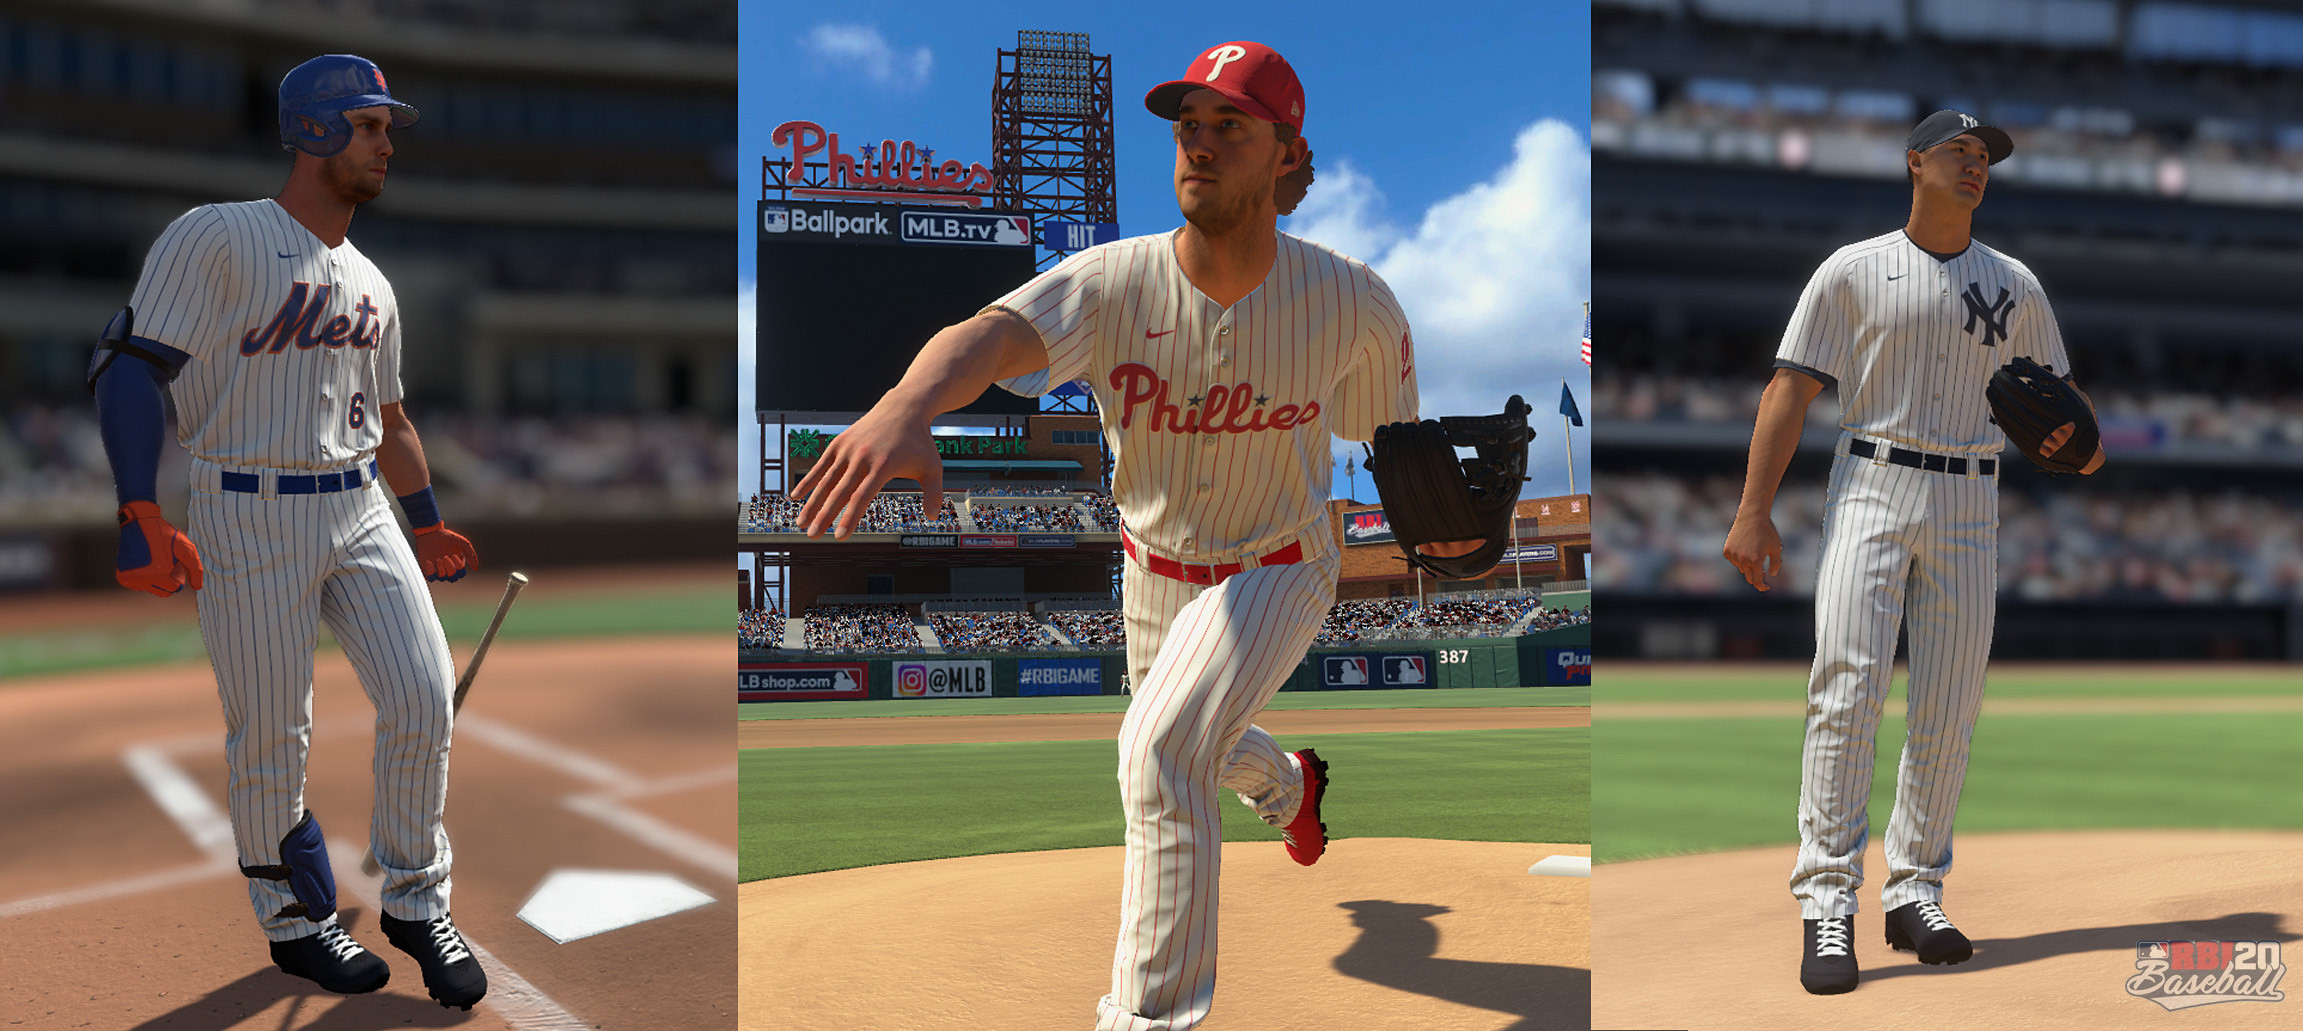 As art director I focused heavily on uniform detail and player head scans.